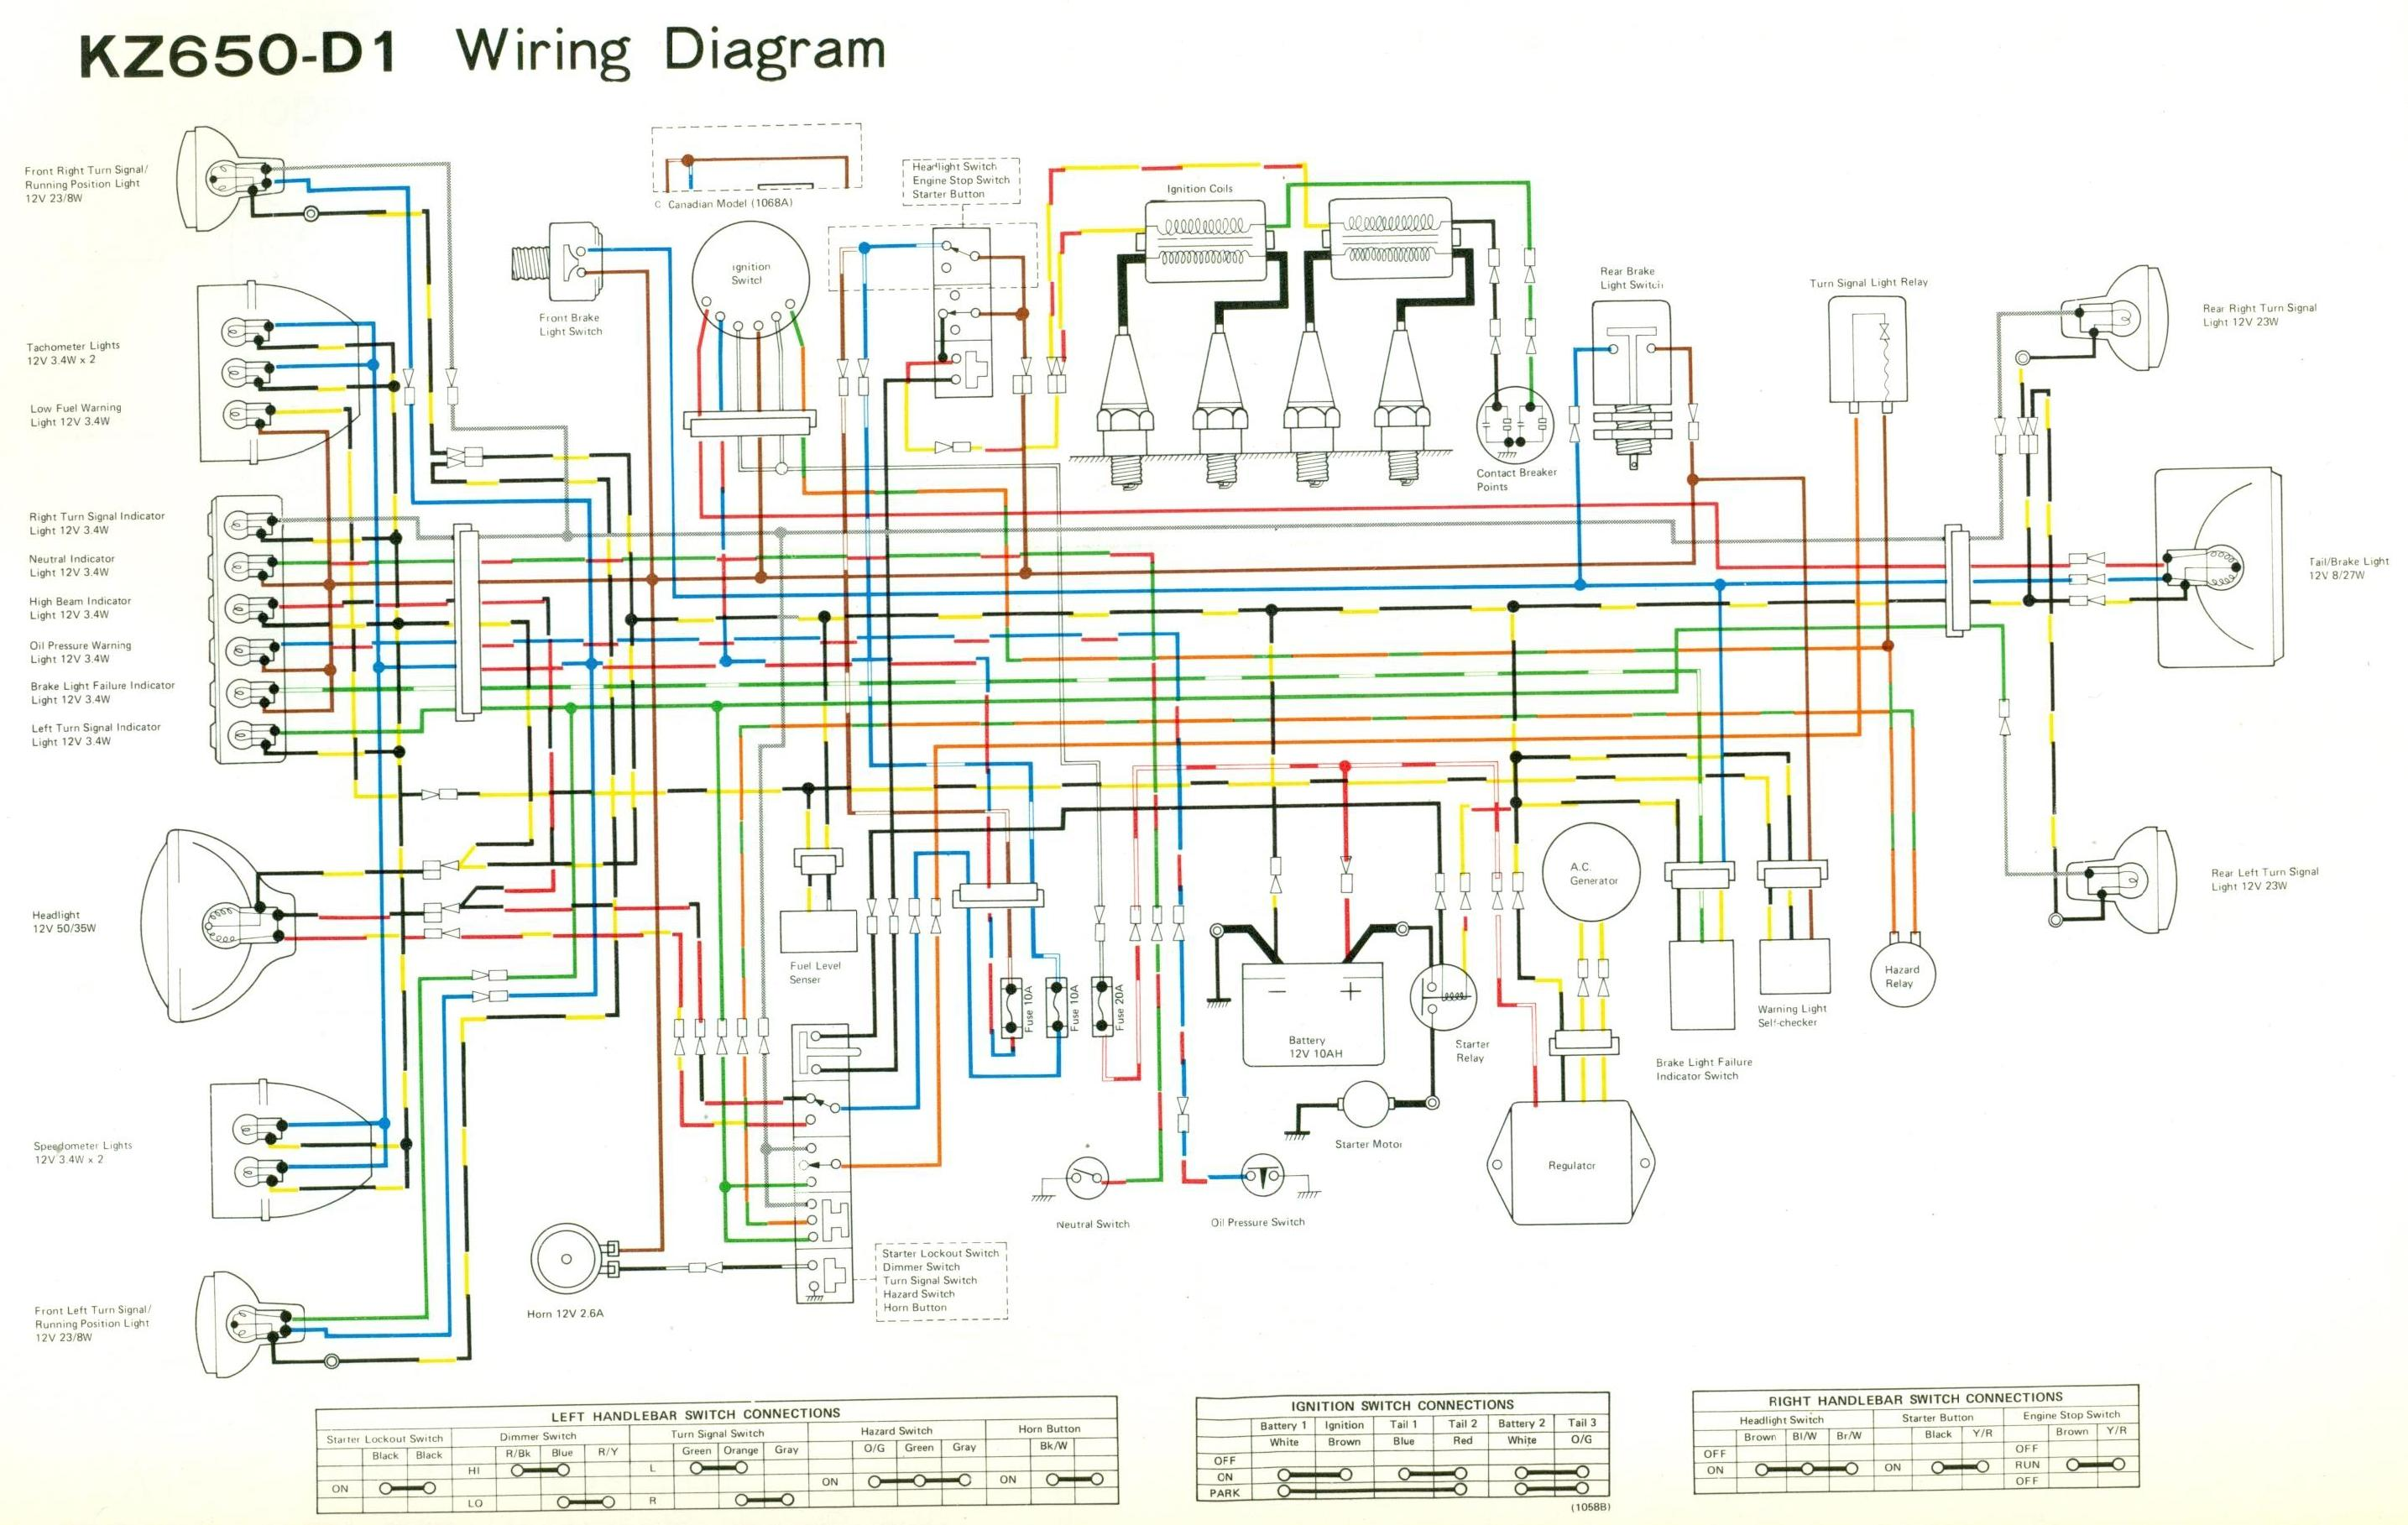 wiring diagrams rh oregonmotorcycleparts com 1982 Honda Nighthawk 450 1982 Honda Nighthawk Motorcycle